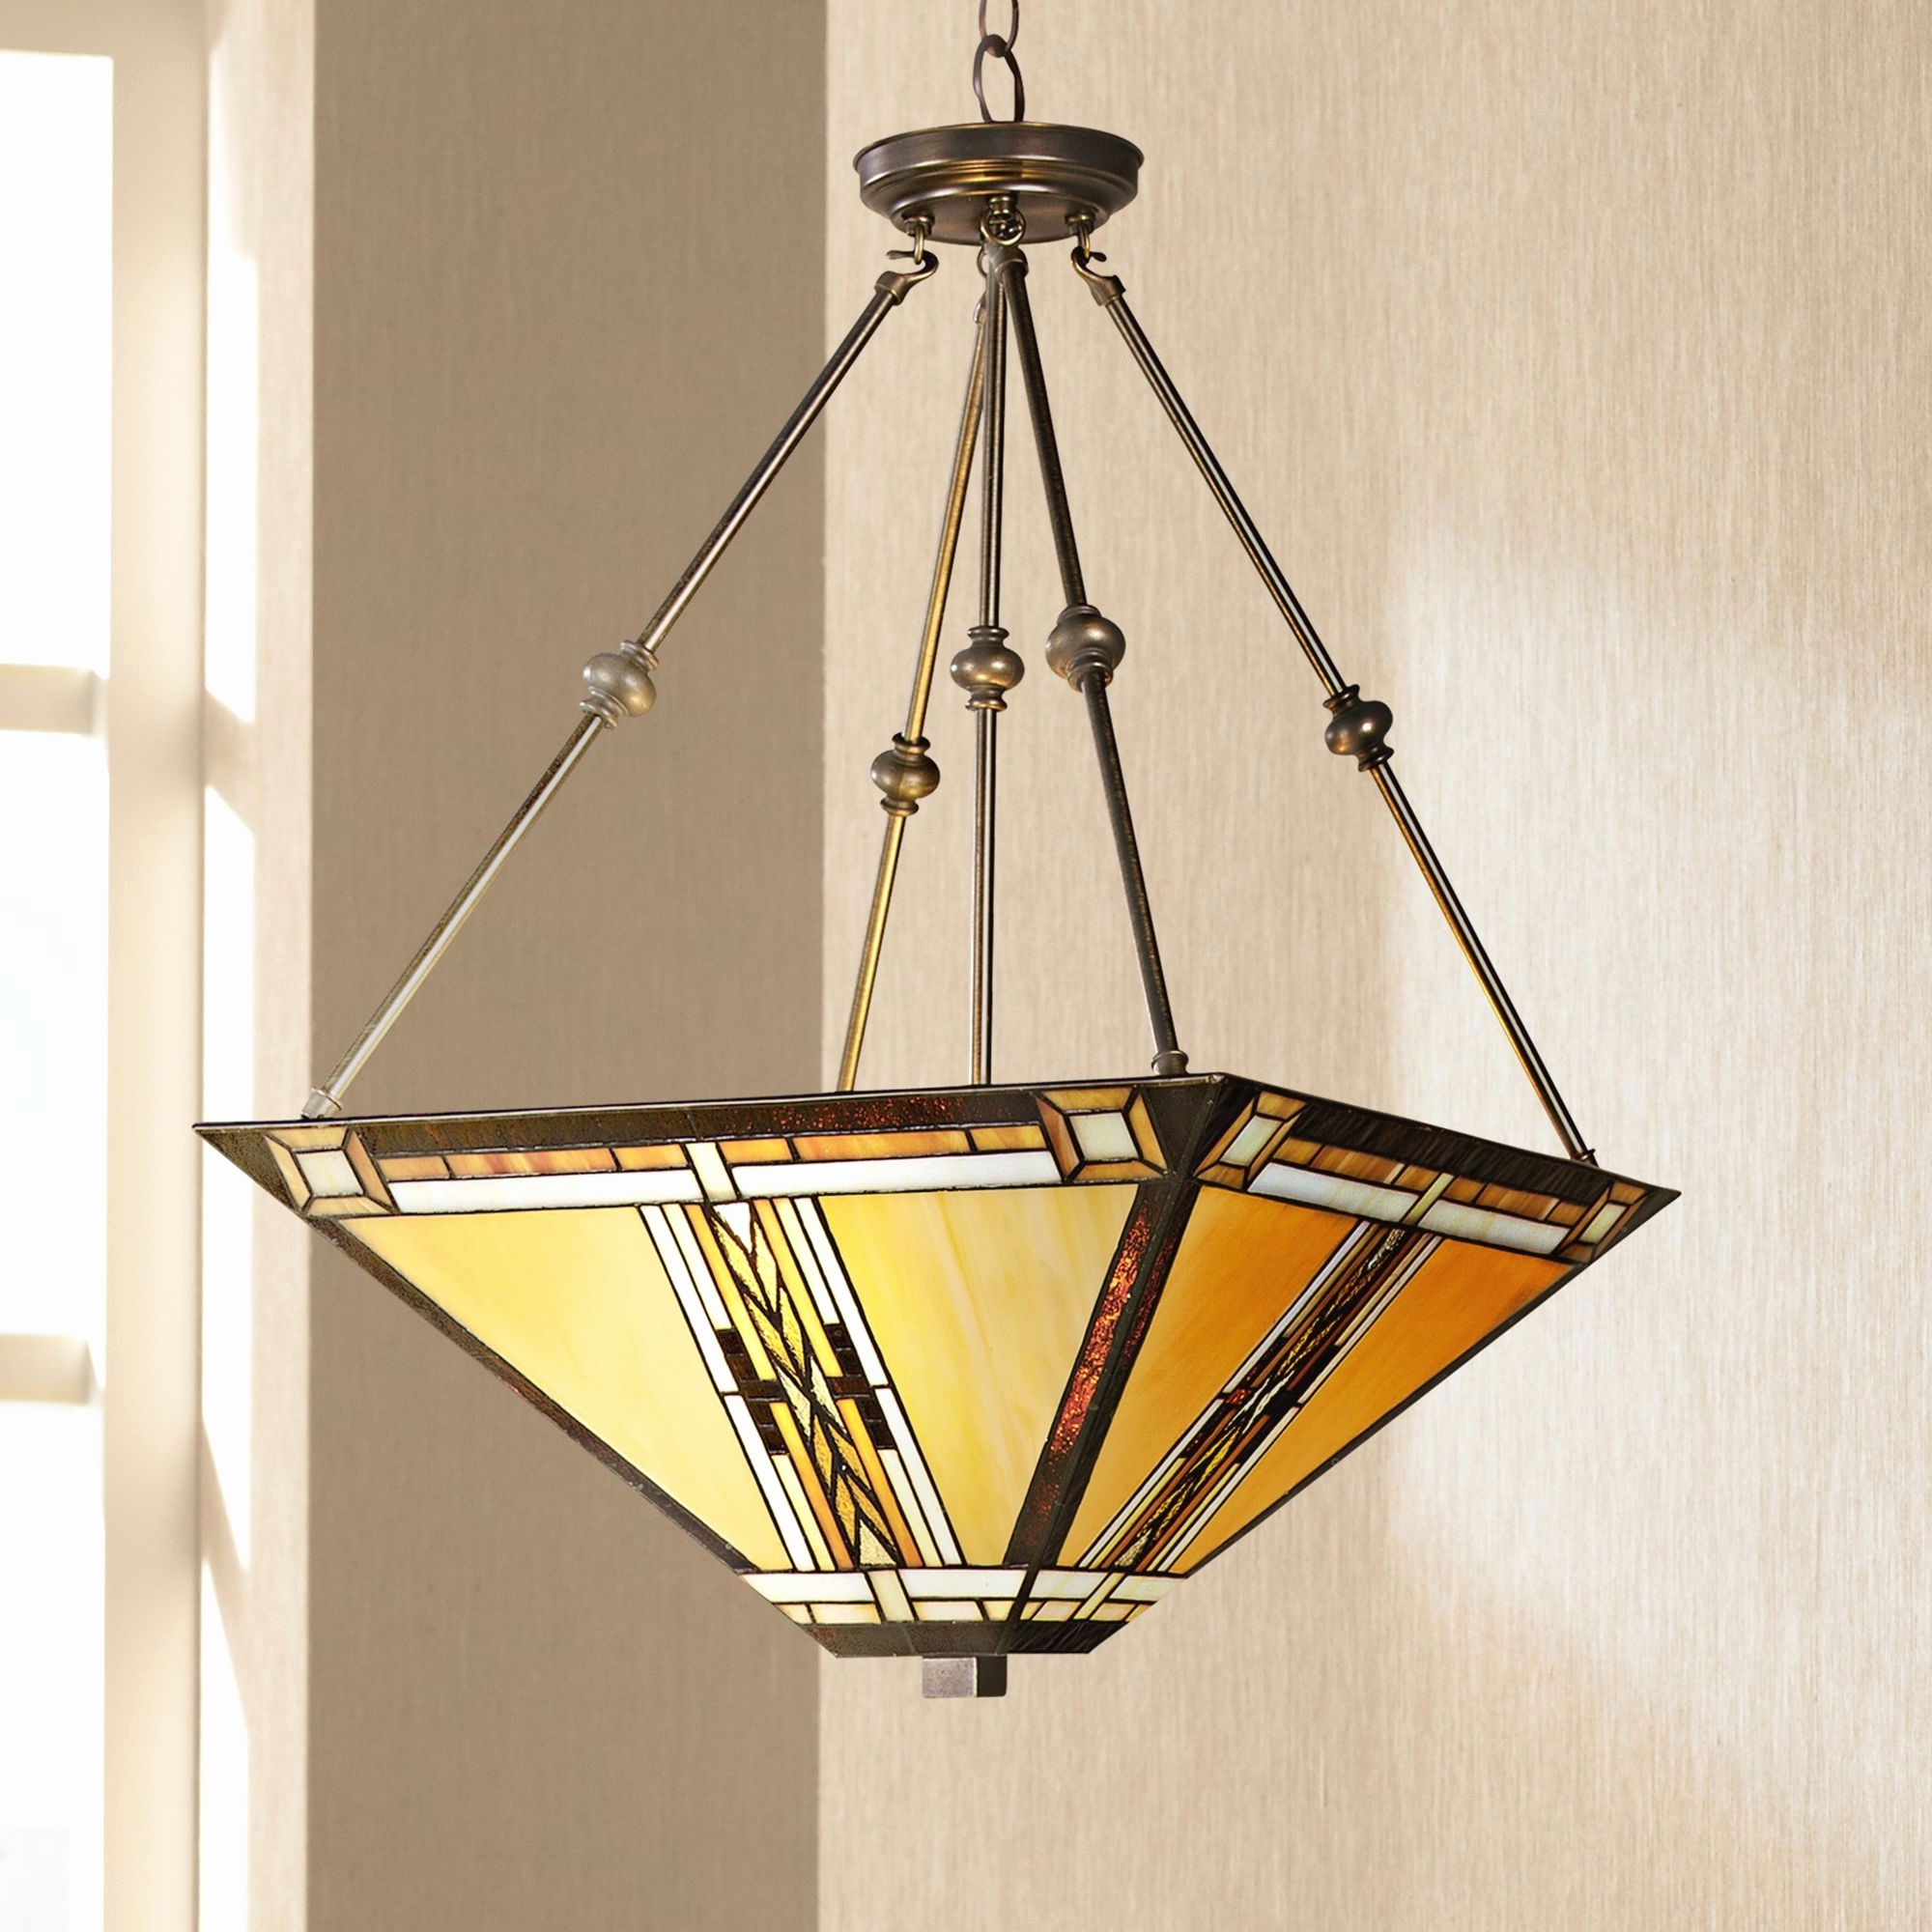 Favorite Mission Style Ceiling Lights Fans With Mini Pendant Outdoor Flush Pertaining To Mission Style Outdoor Ceiling Fans With Lights (View 9 of 20)